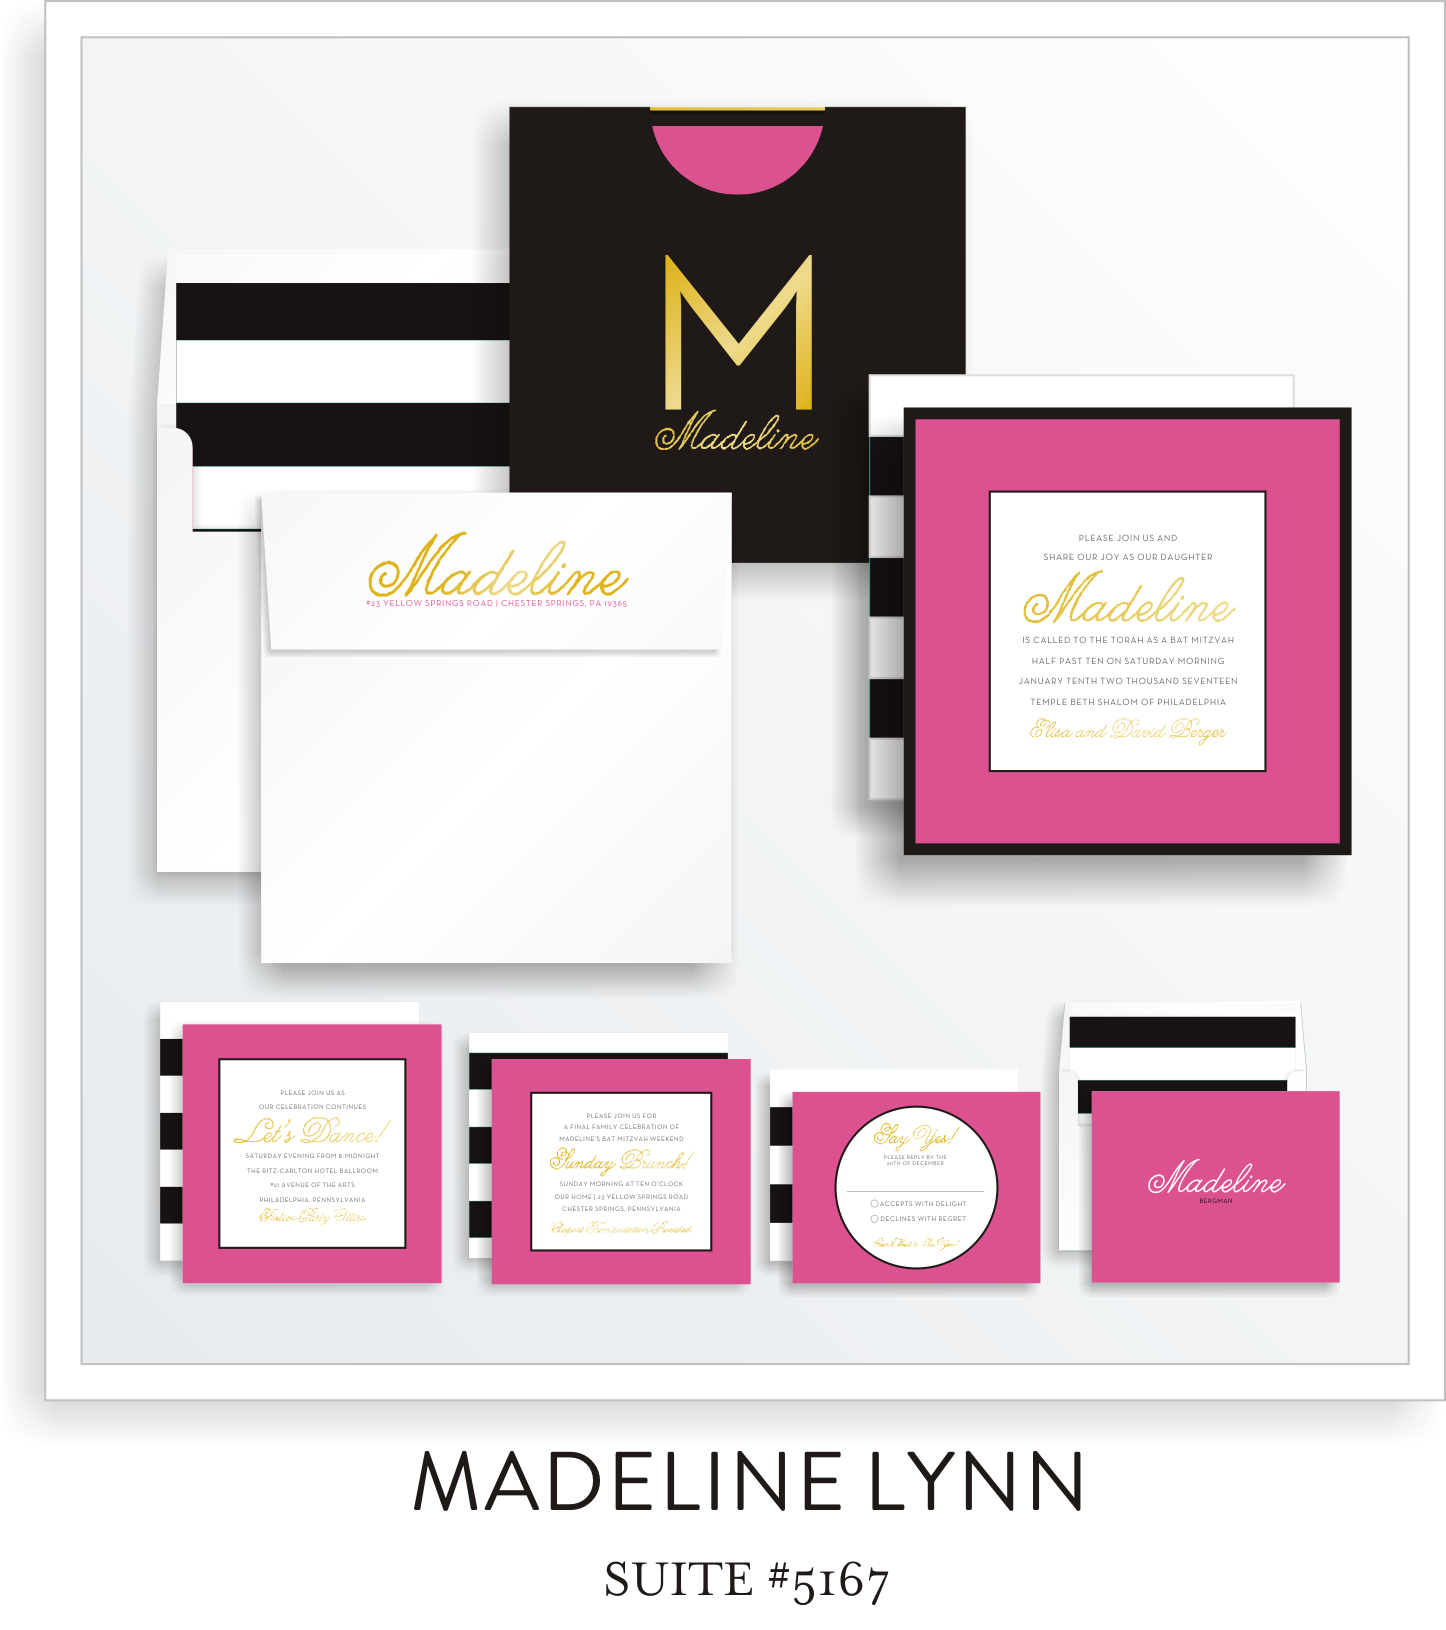 Bat Mitzvah Invitation Suite 5167 - Madeline Lynn